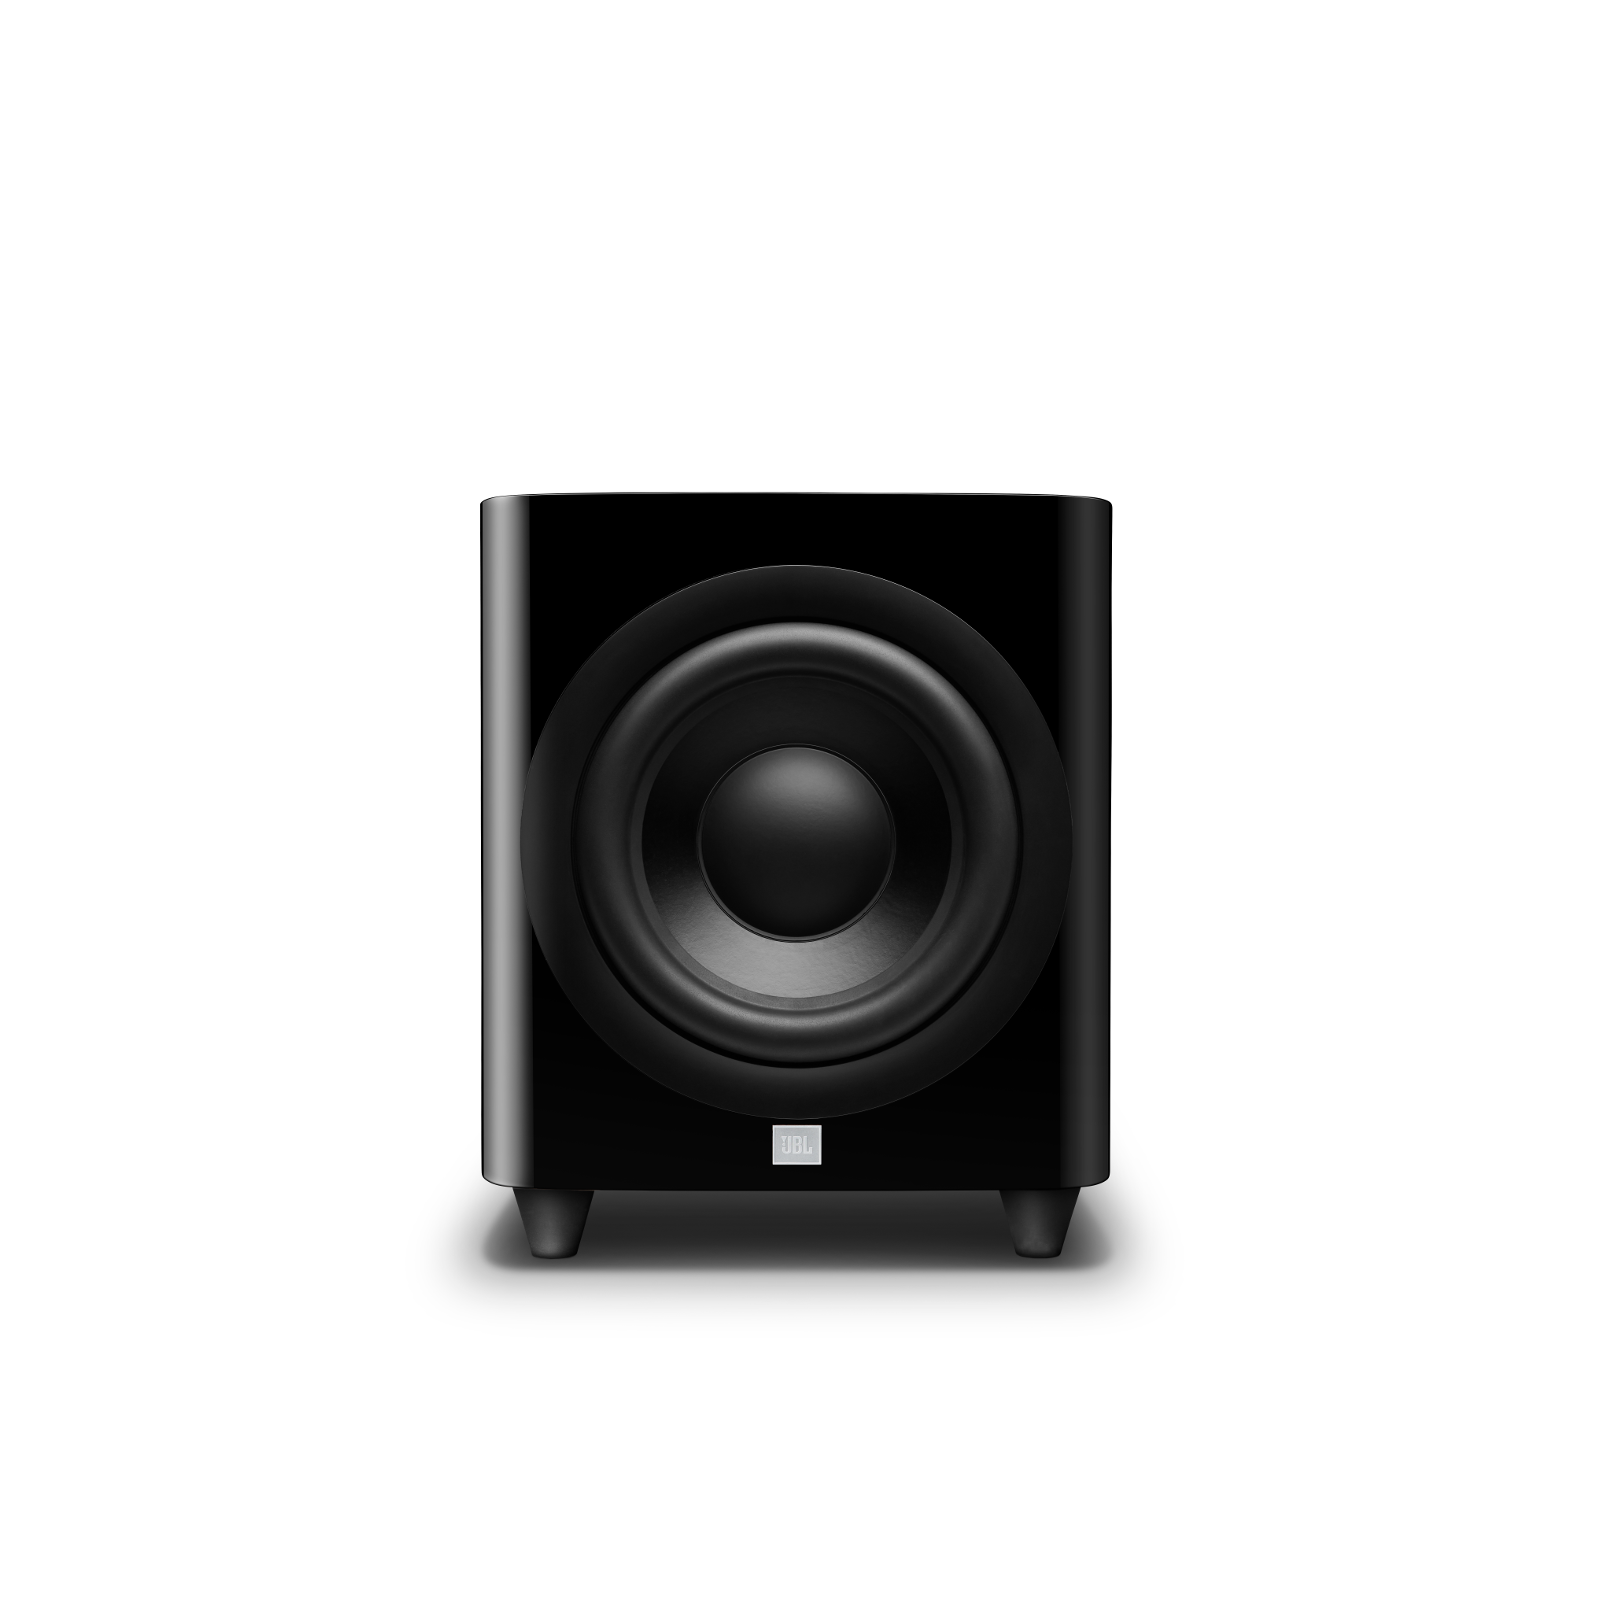 HDI-1200P - Black Gloss - 12-inch (300mm) 1000W Powered Subwoofer - Hero